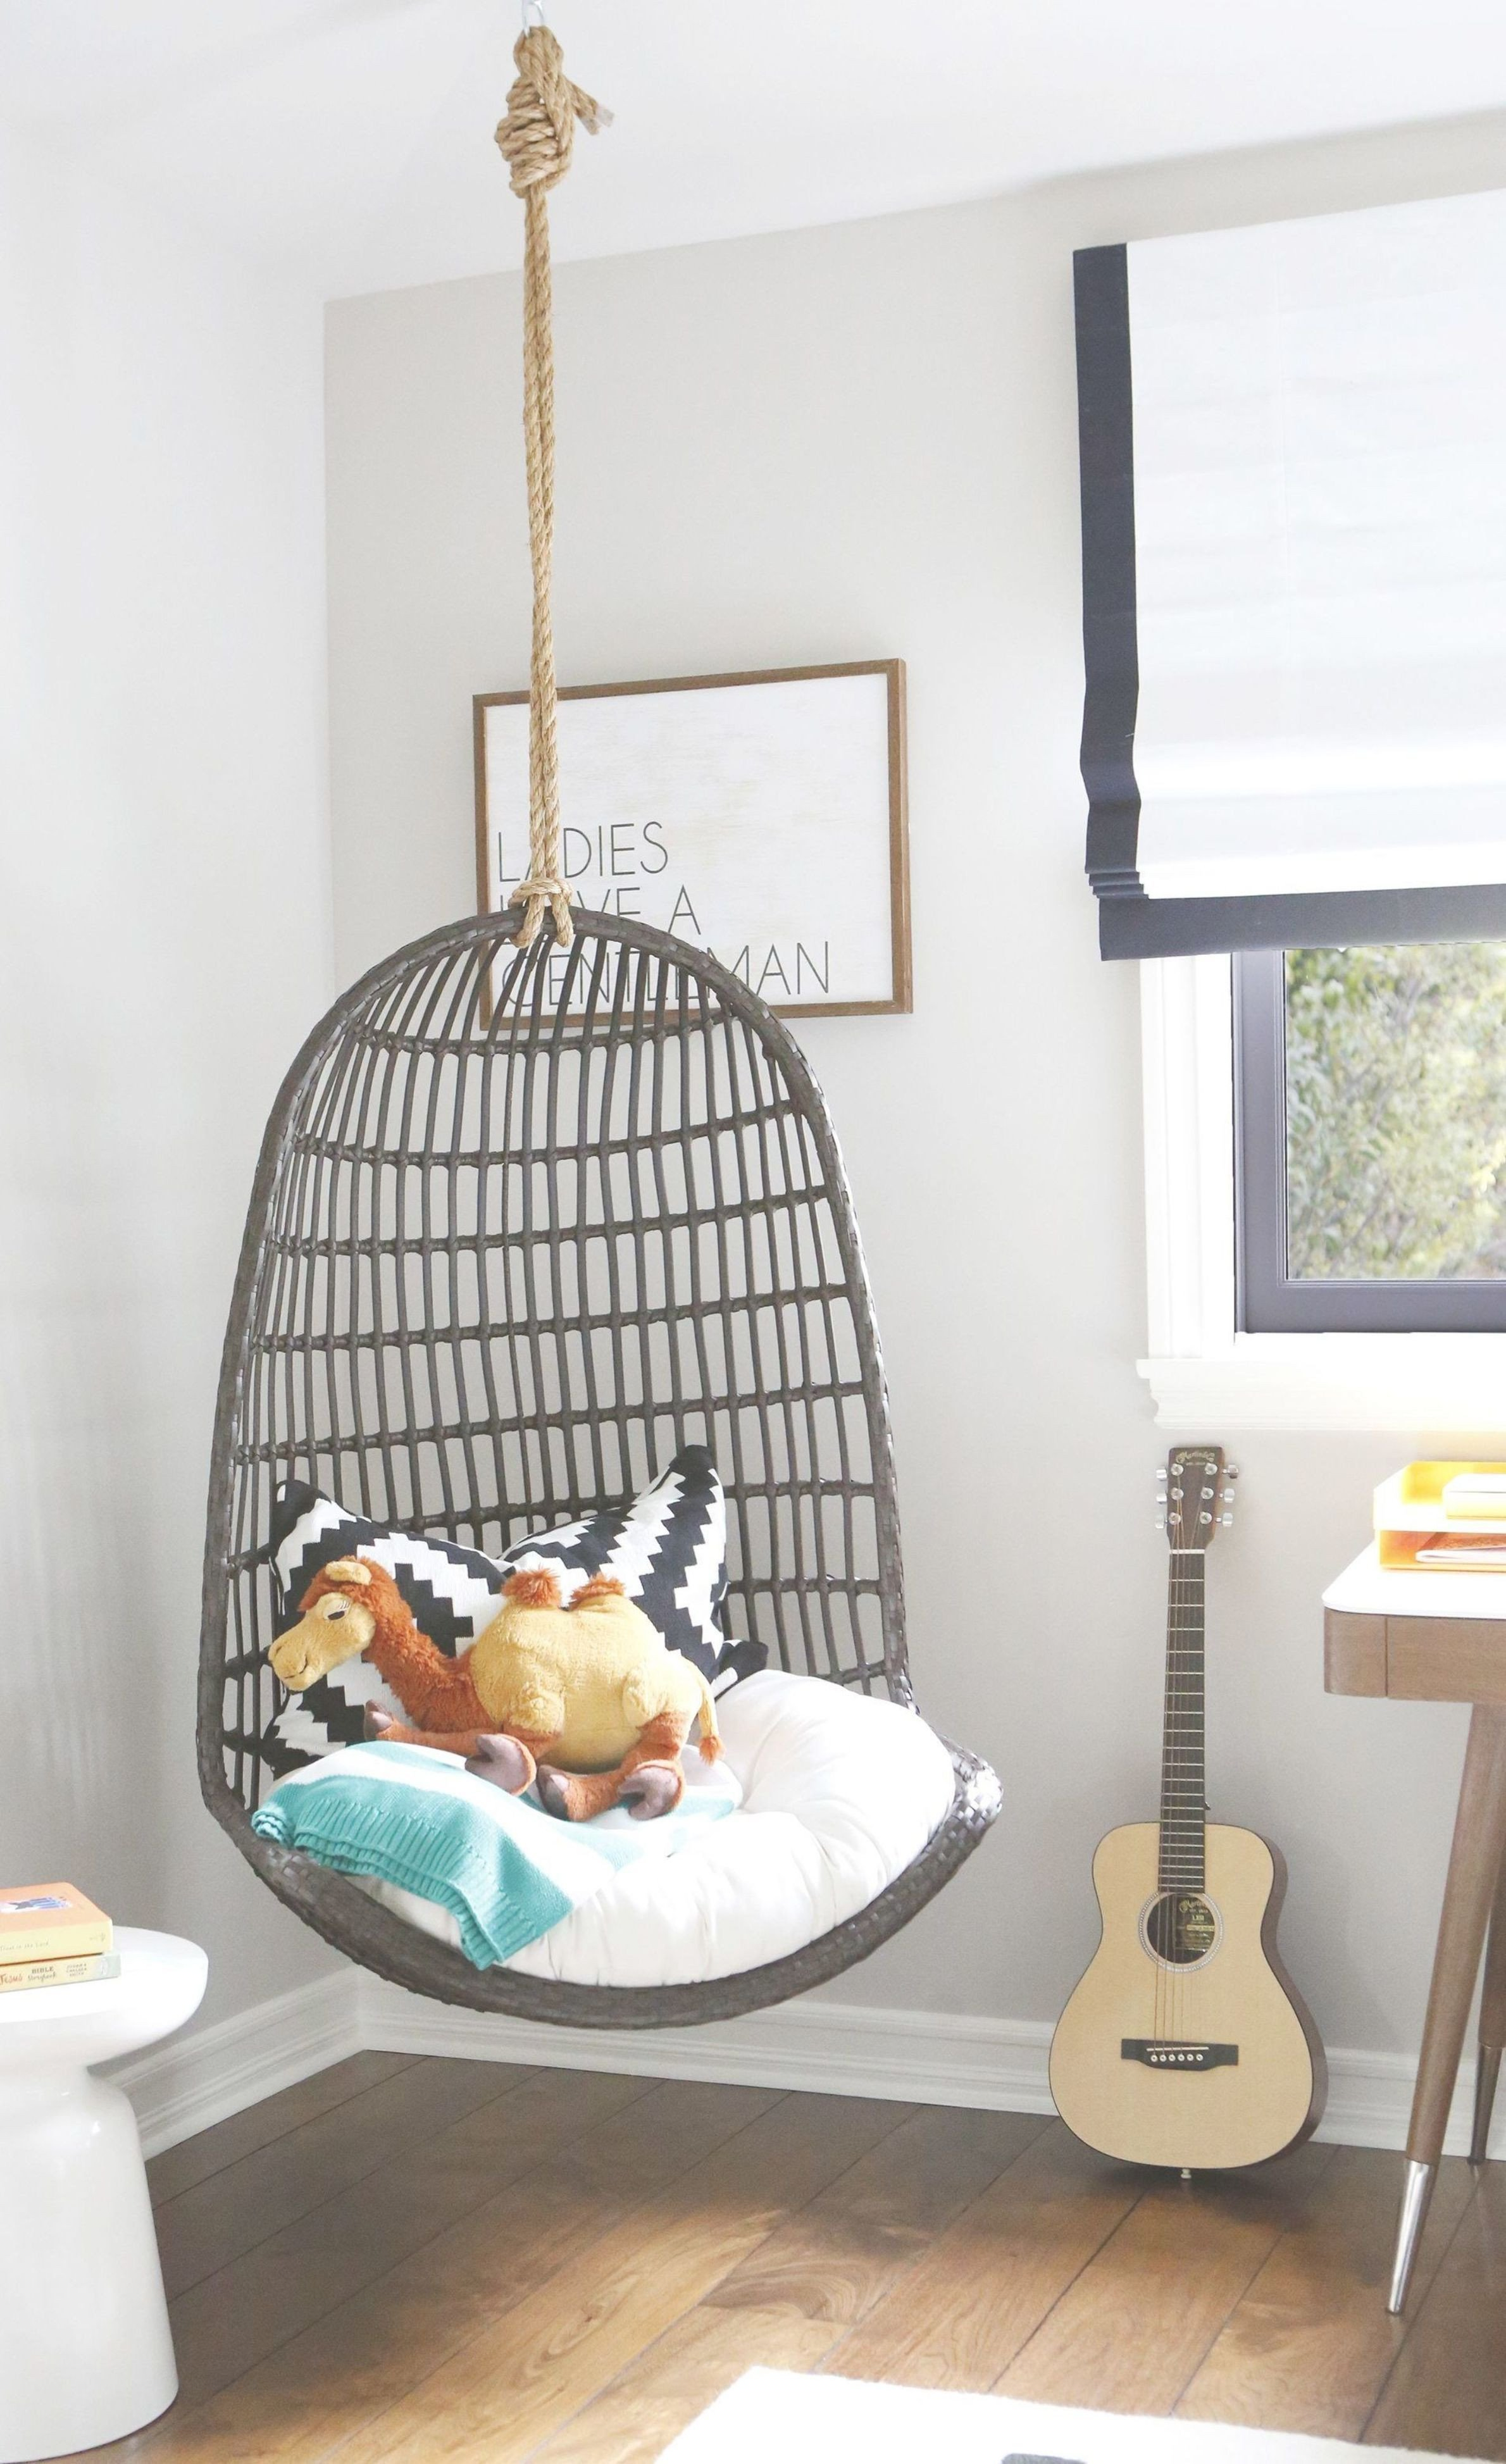 Hanging Chairs for Bedroom Inspirational Modern Eclectic Big Boy Room with Hanging Chair In 2020